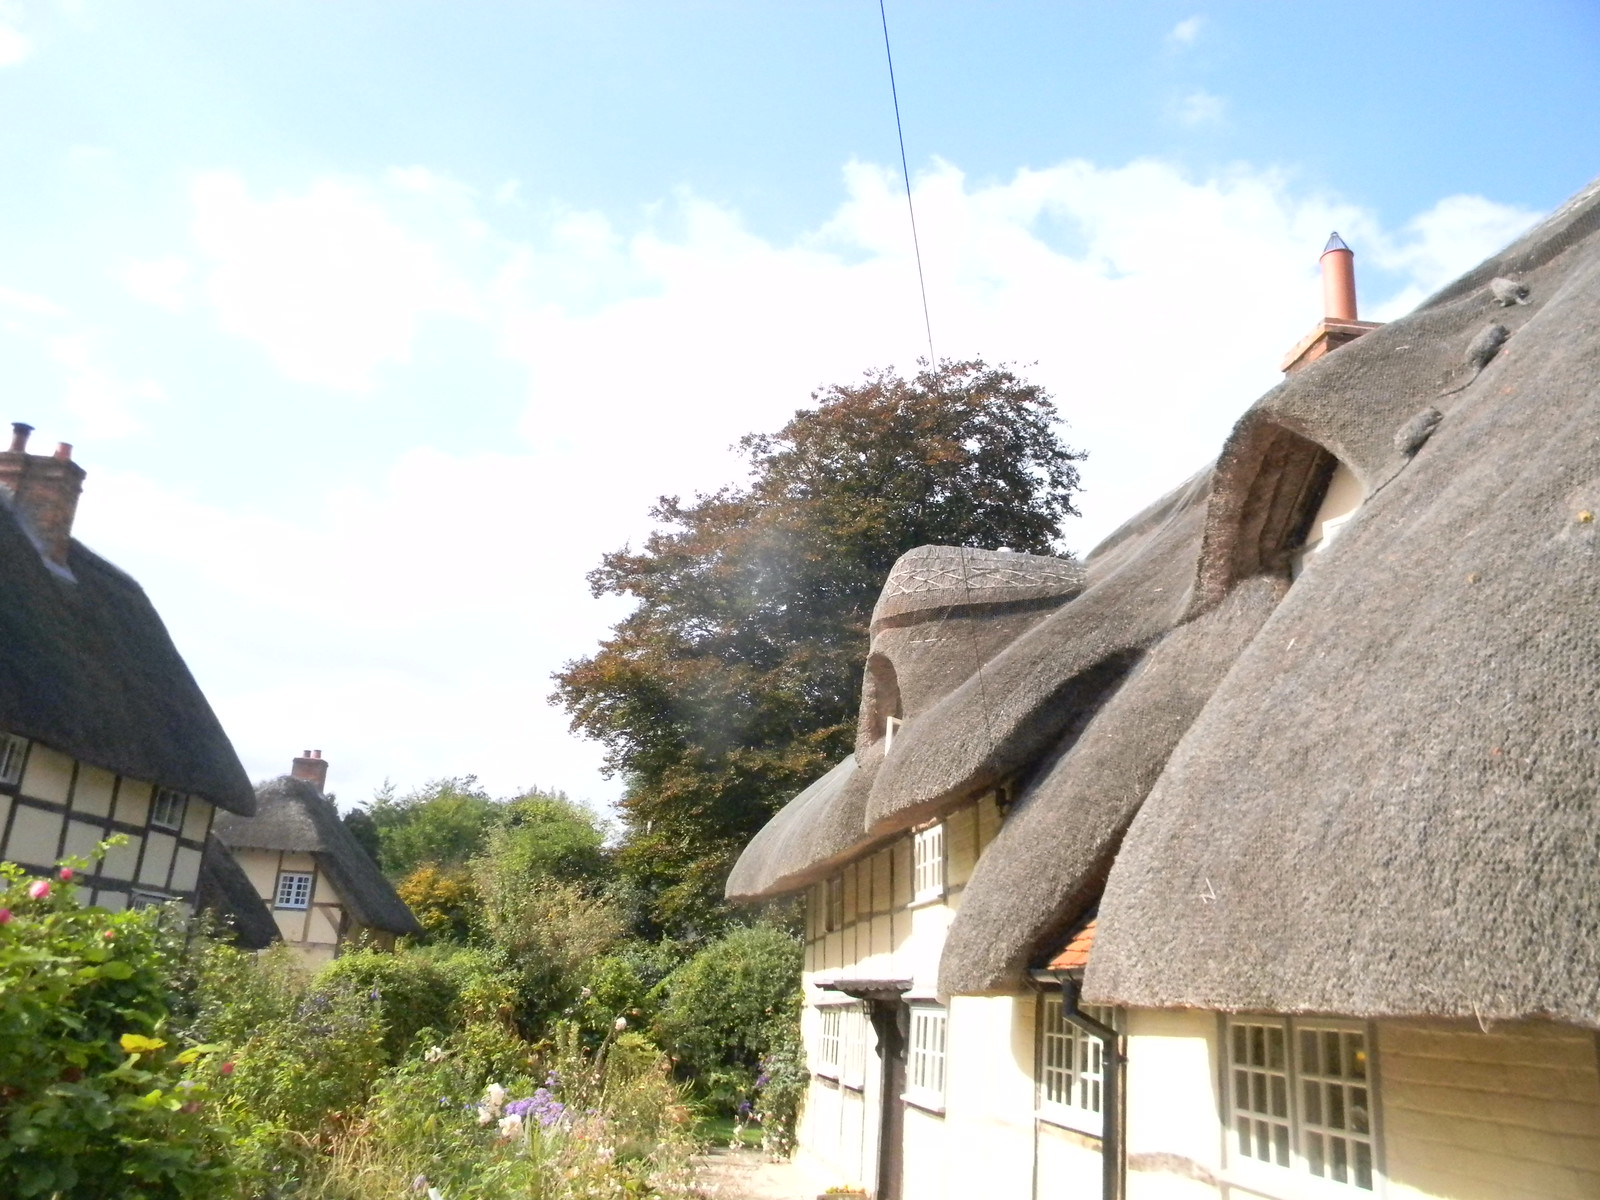 Thatch Cholsey to Goring